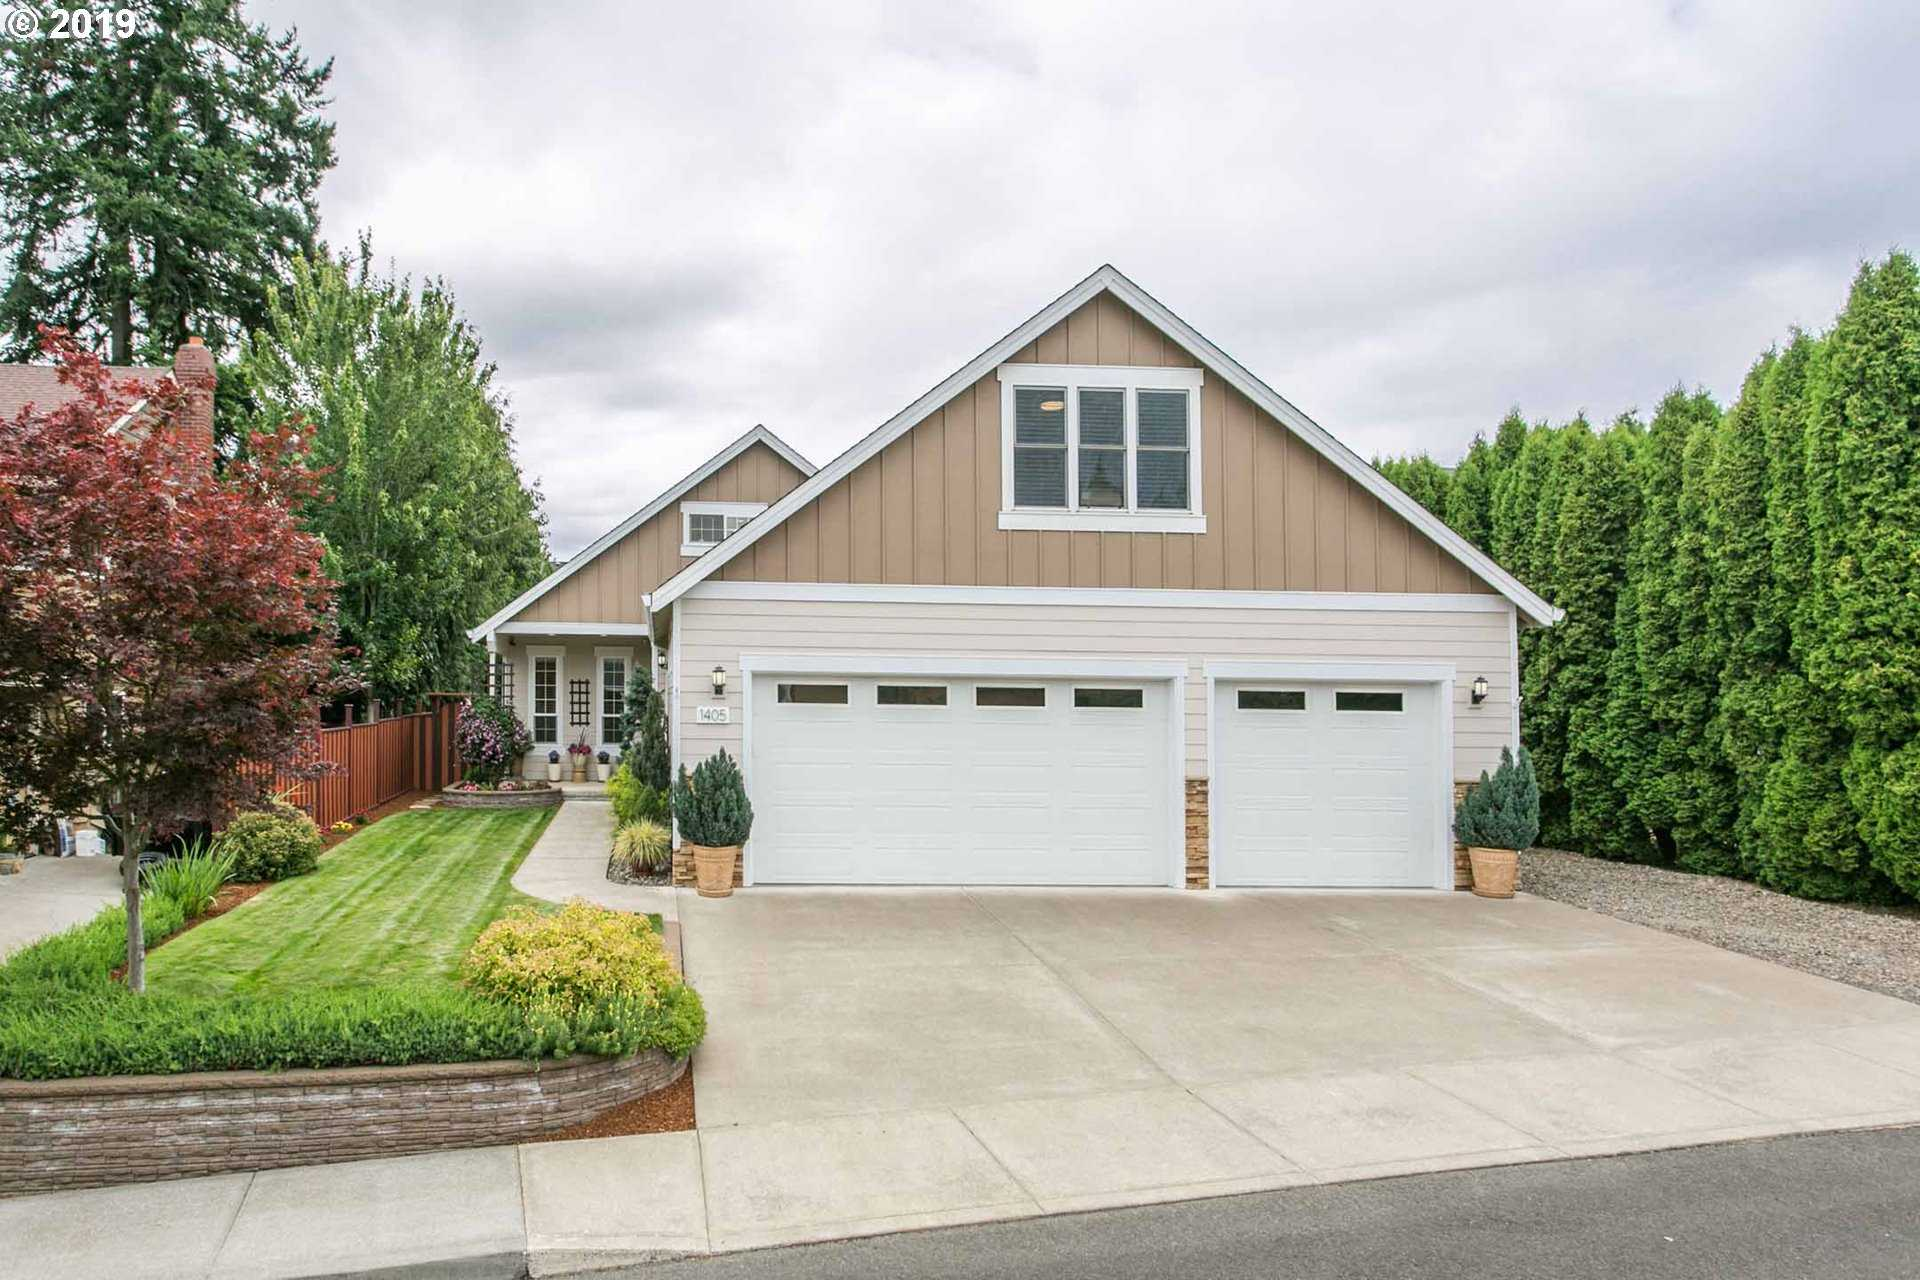 $649,900 - 5Br/3Ba -  for Sale in South Redwood Estates, Canby